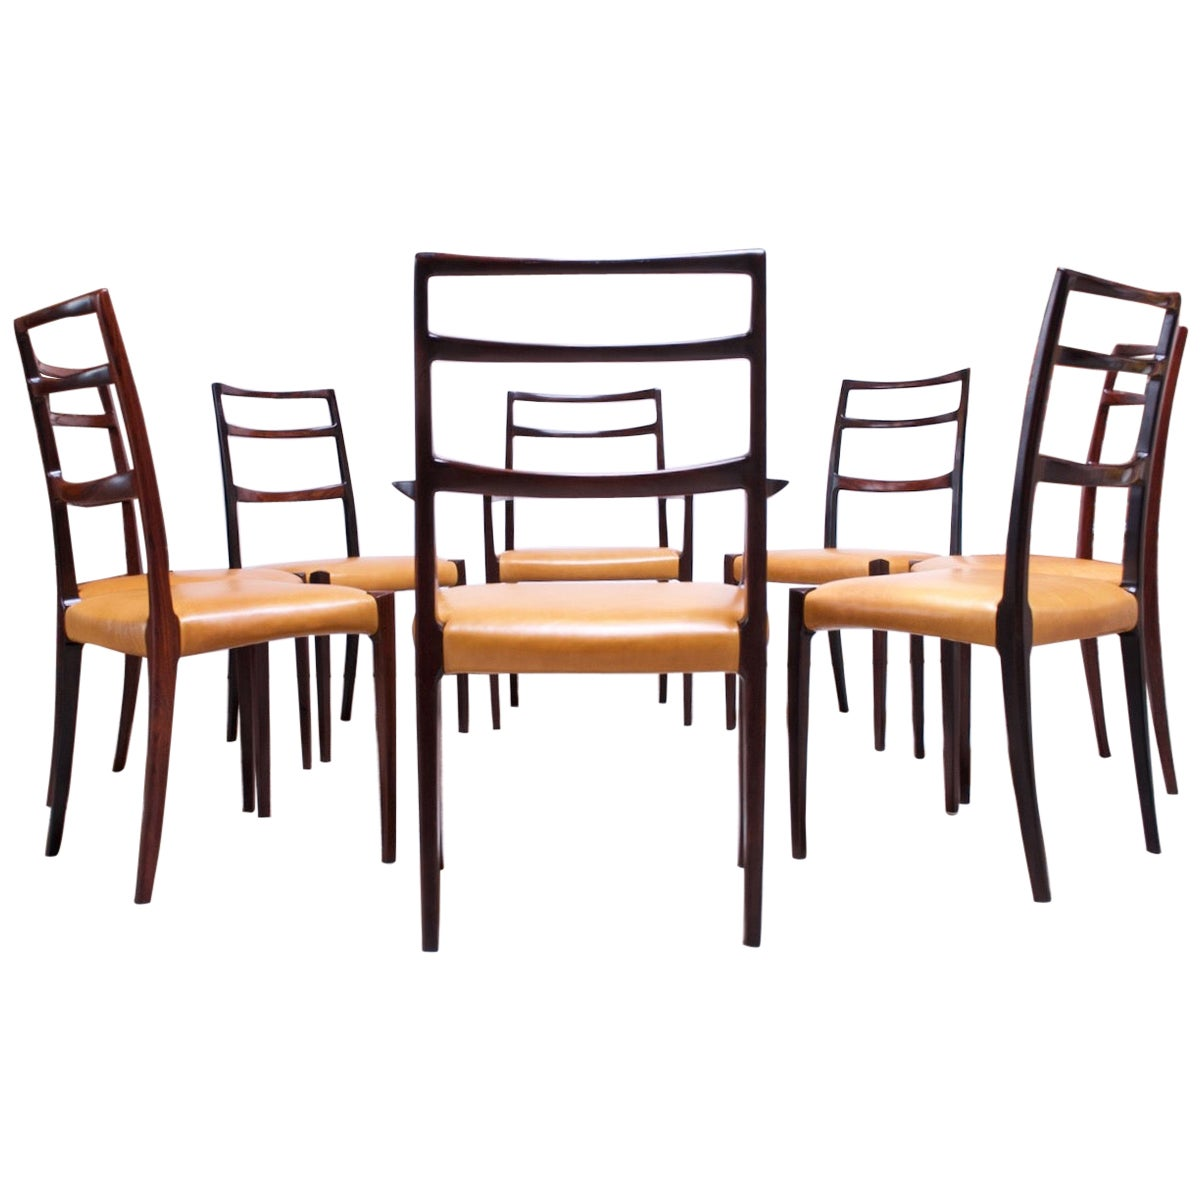 Set of Eight Danish Rosewood and Leather Dining Chairs by Sorø Stolefabrik